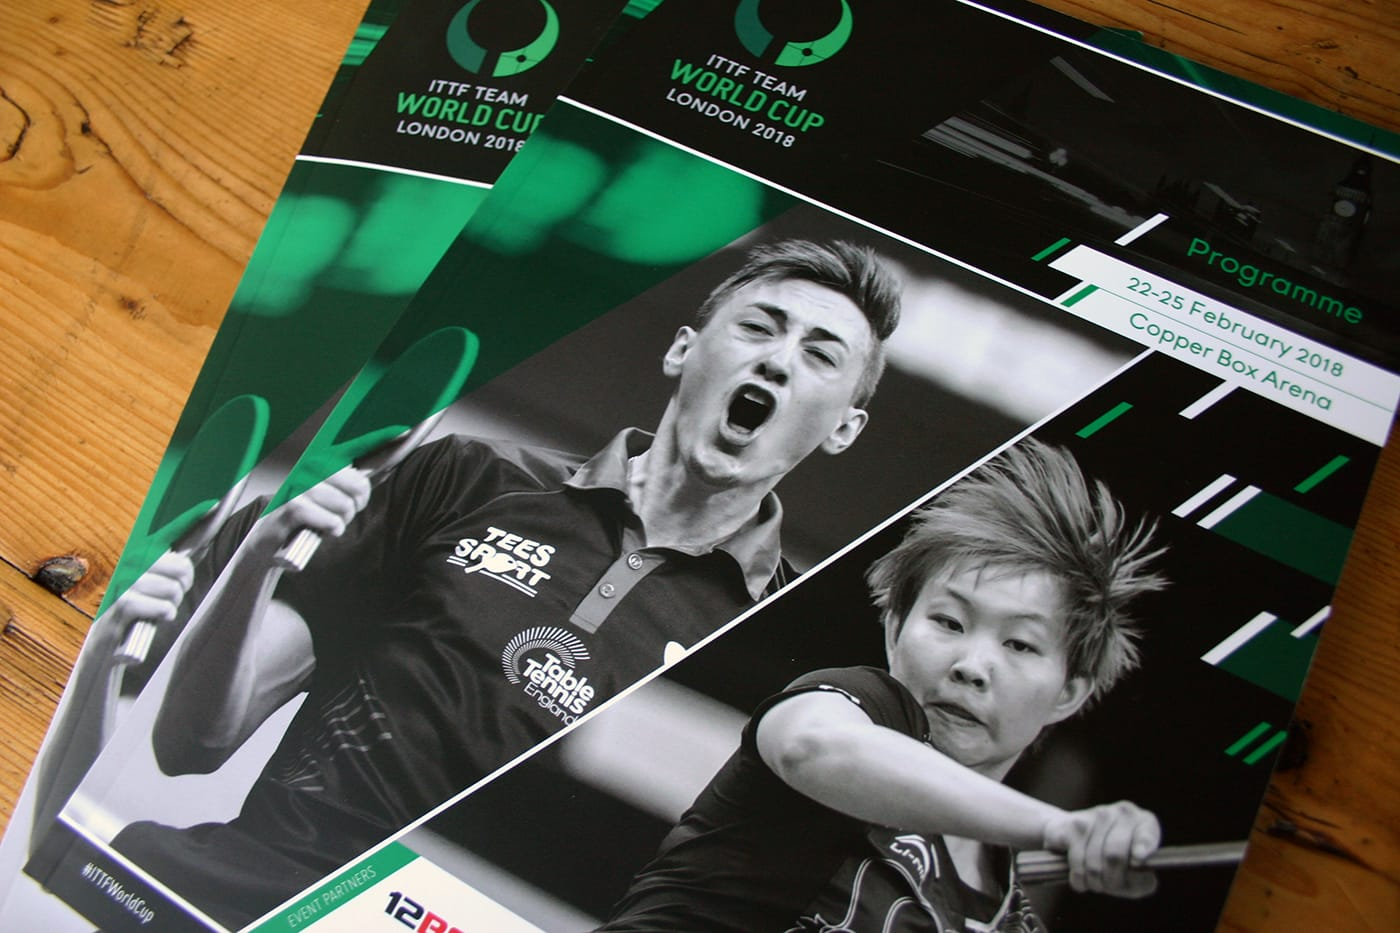 Design and production of the official event programme for the 2018 ITTF Team World Cup